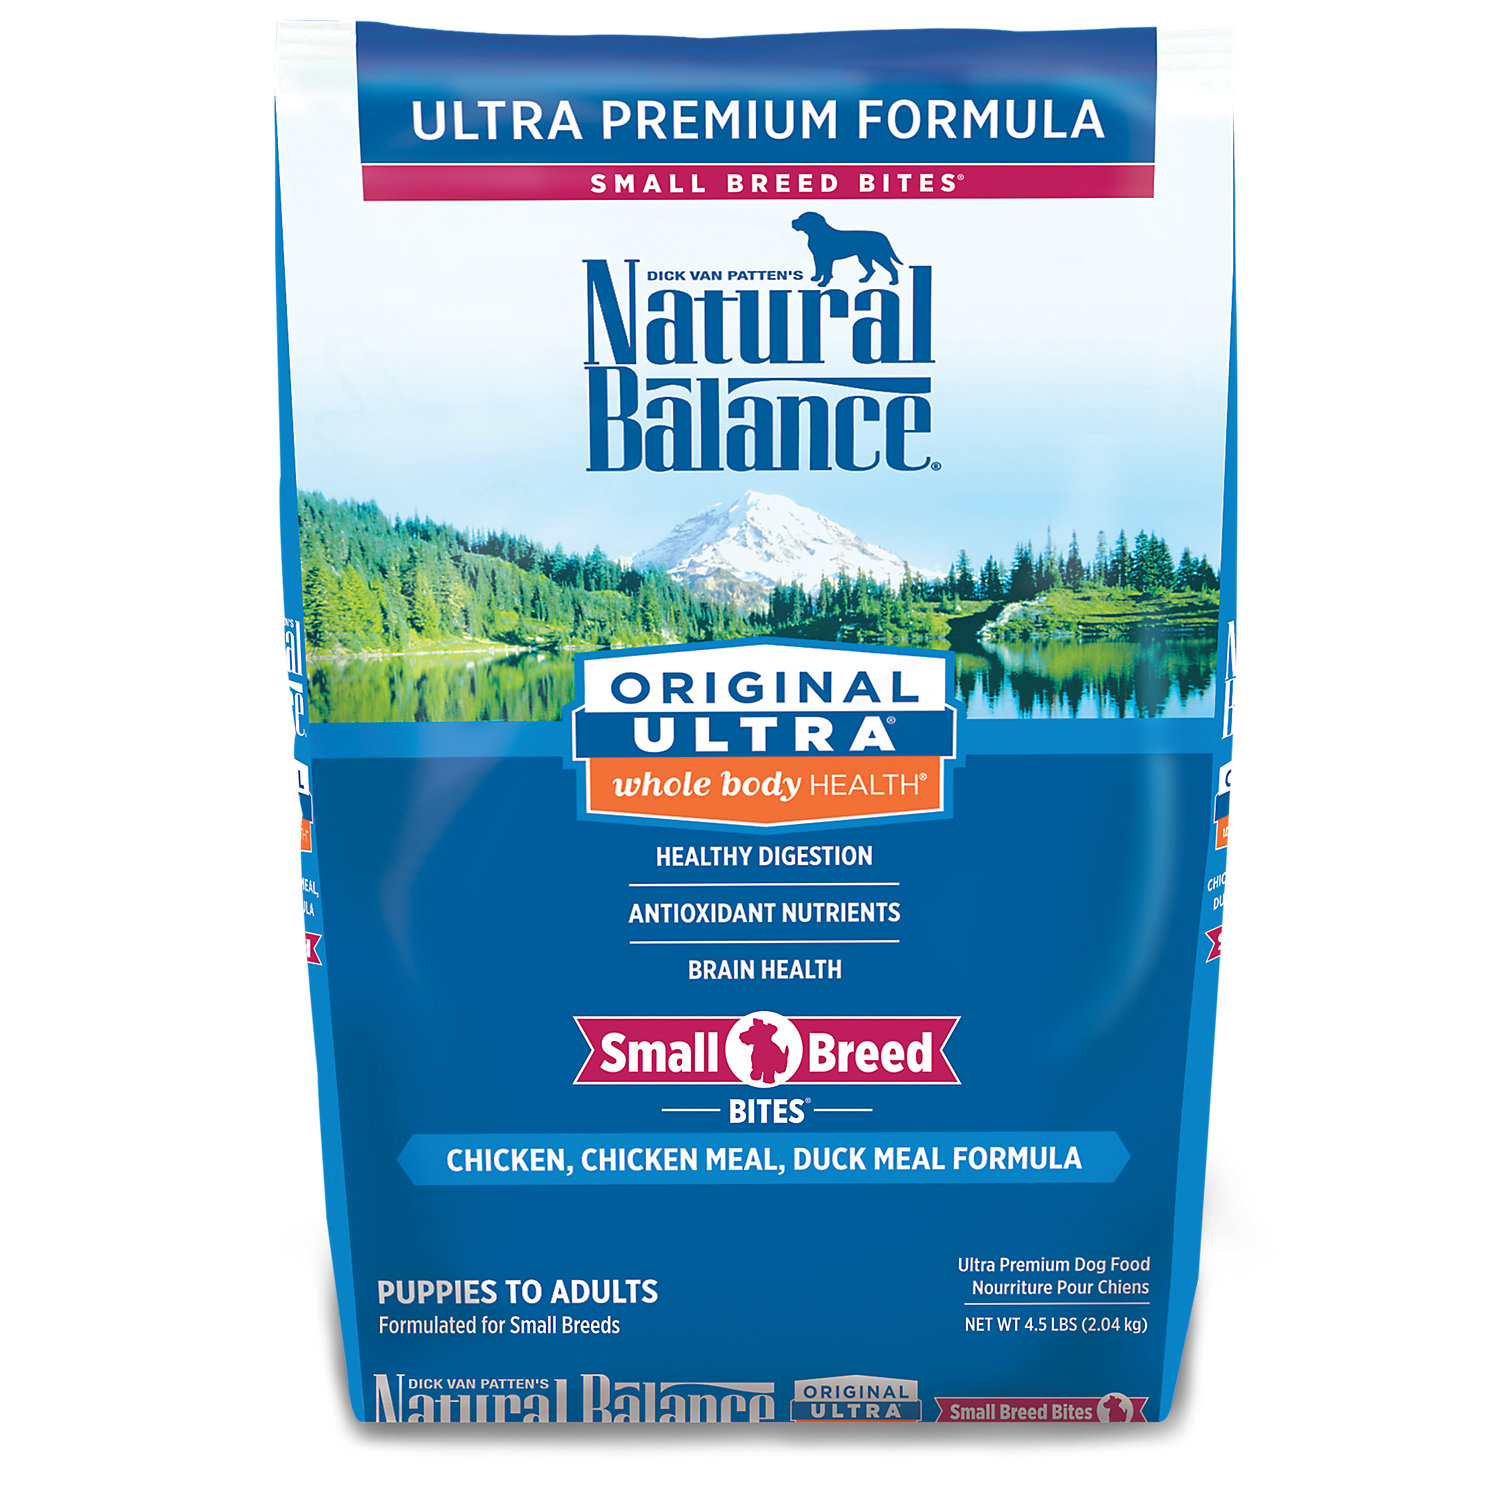 Natural Balance Small Bites Original Ultra Whole Body Health